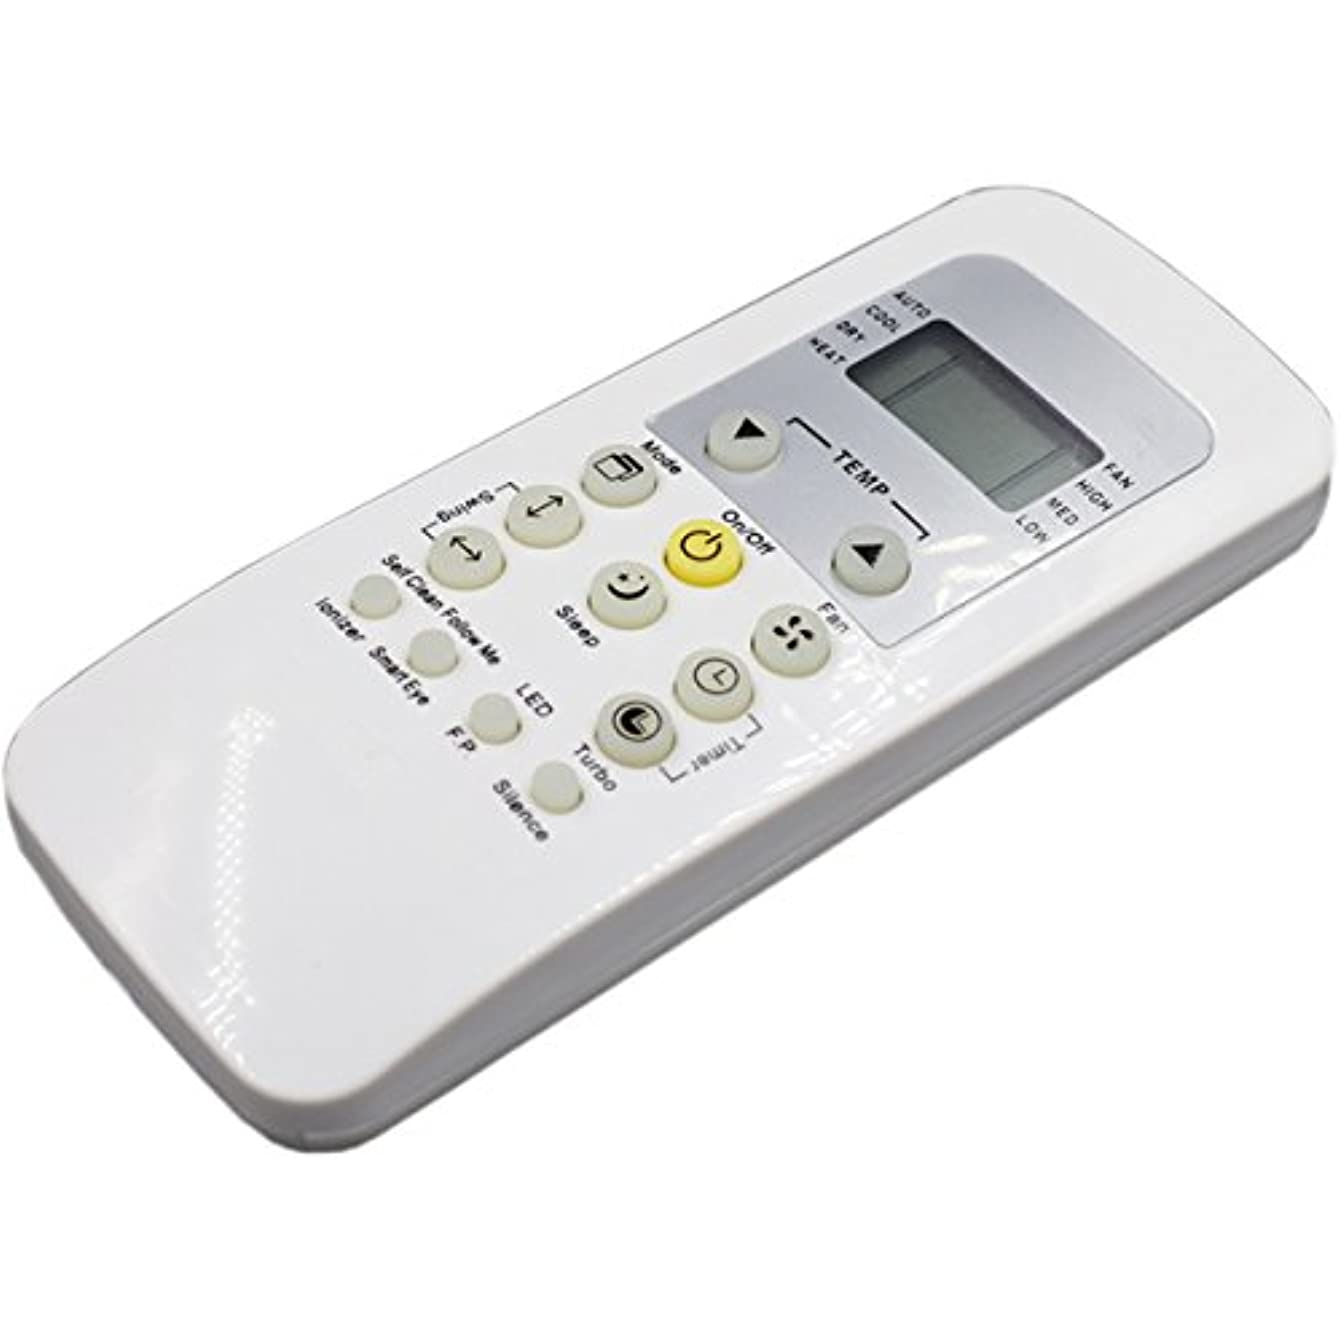 New Replacement Air Conditioner Remote Control Fit for Carrier RG56/BGEFU1-CA RG56/BGEF-CA RG56 BGCE